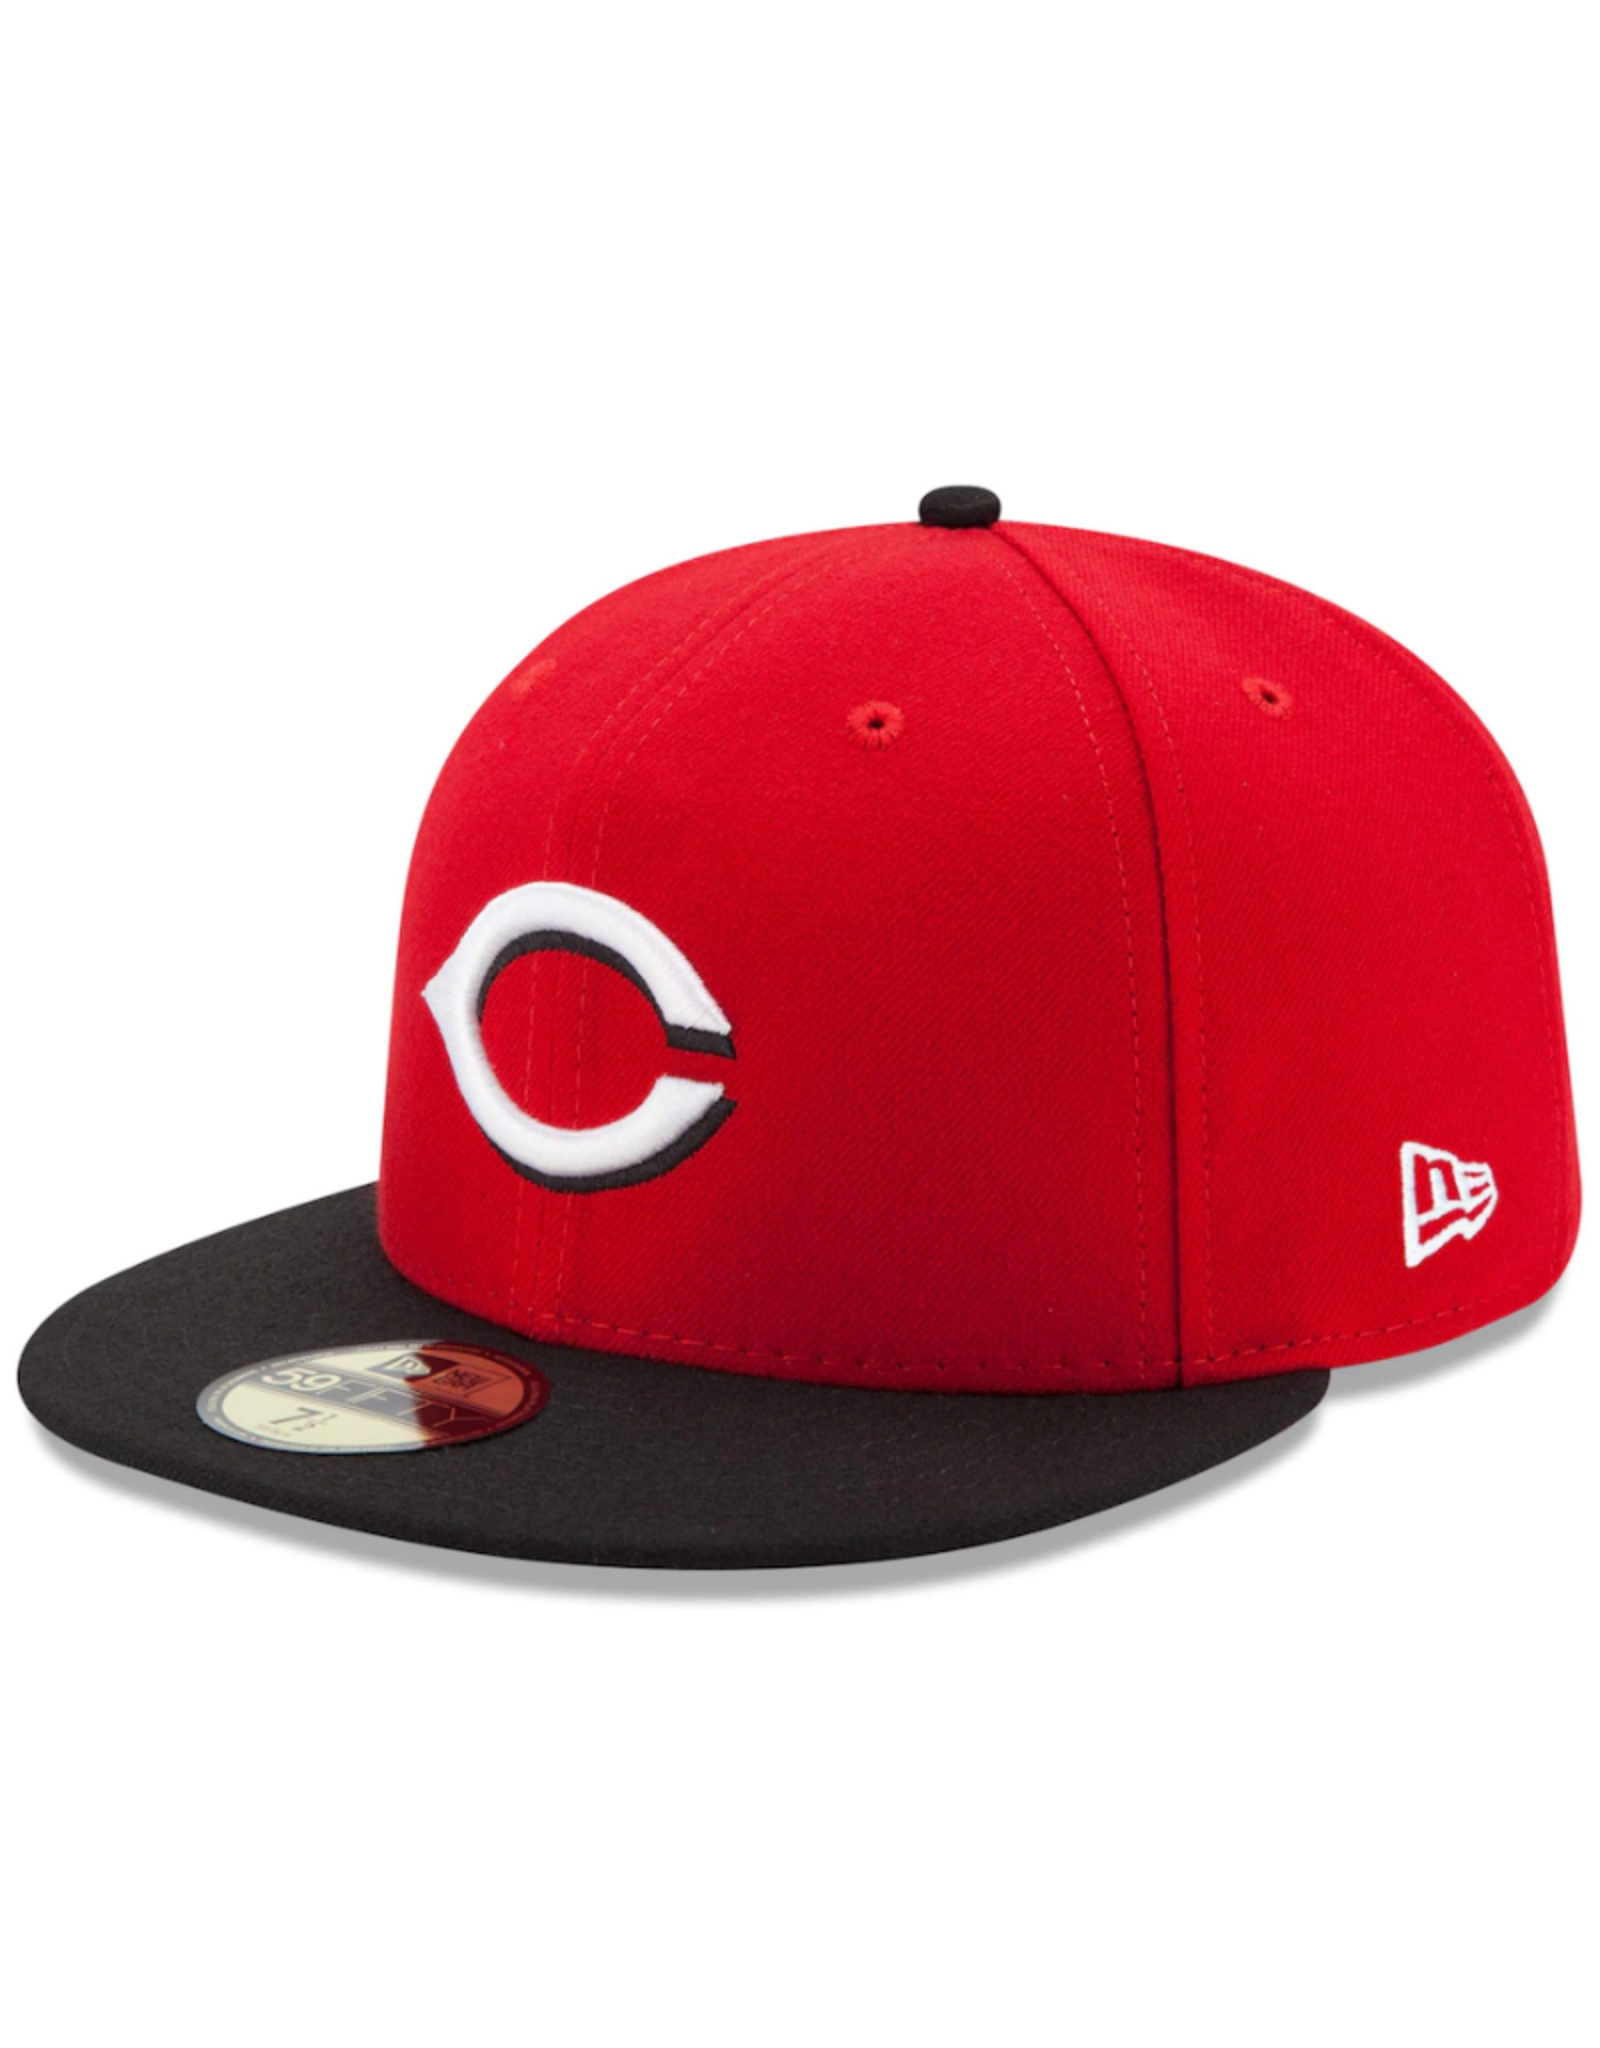 New Era On-Field Authentic 59FIFTY Road Hat Cincinnati Reds Red/Black